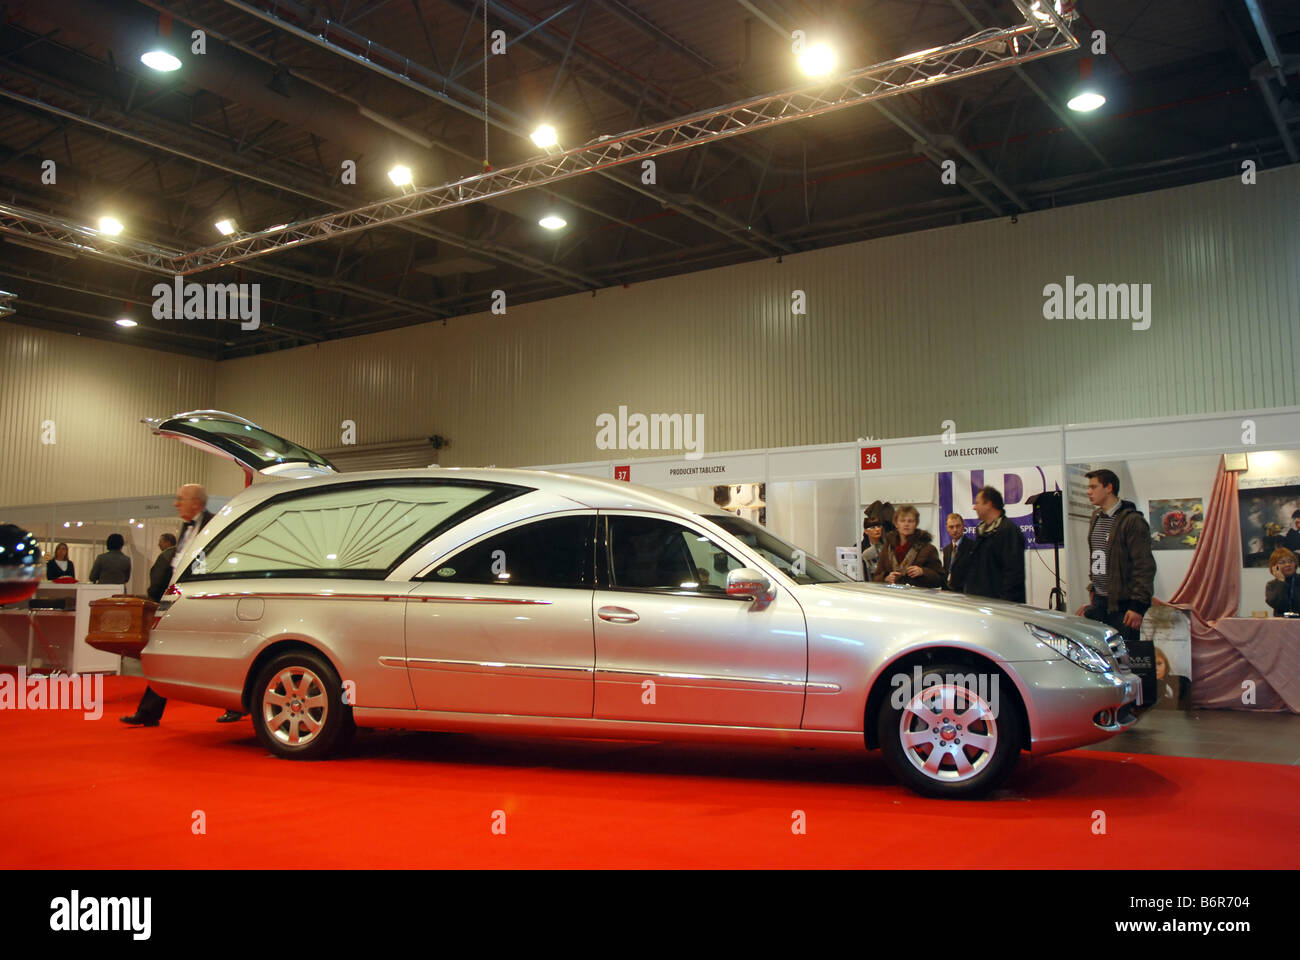 hearse mercedes car on memento funeral expo in warsaw poland stock photo royalty free image. Black Bedroom Furniture Sets. Home Design Ideas